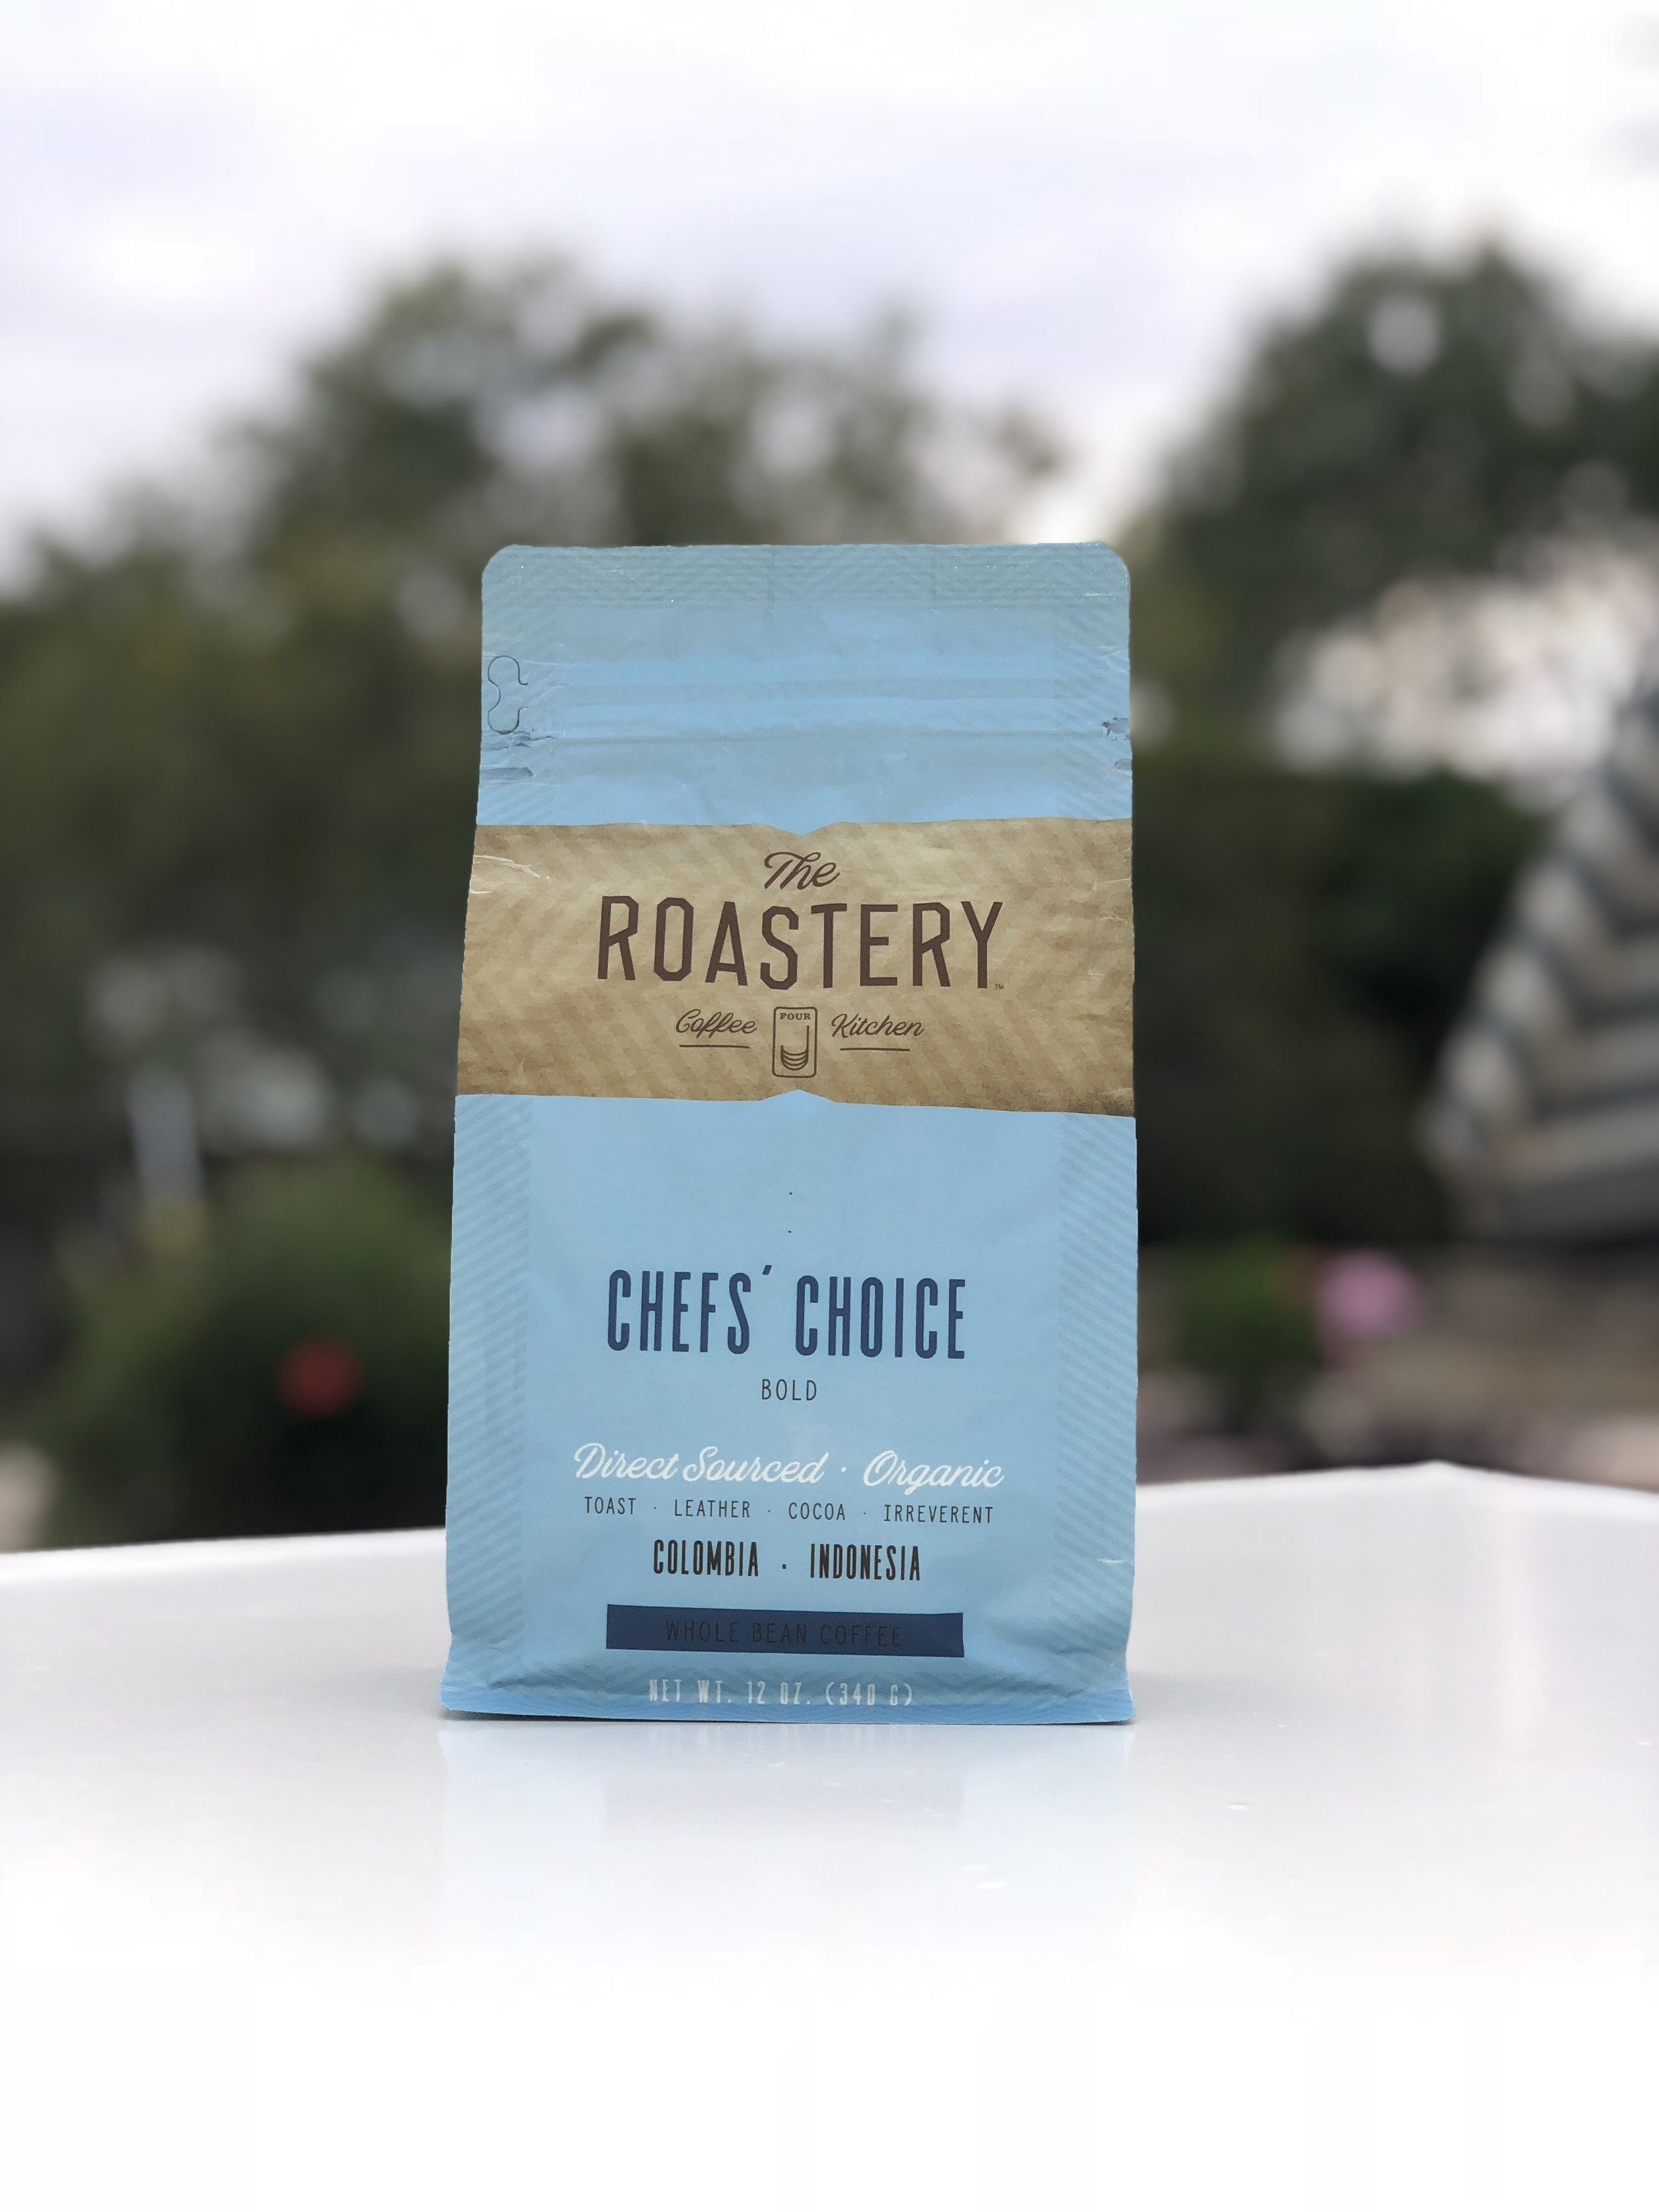 CHEFS' CHOICE - We wanted a coffee with a strong, bold foundation—and one that could hold its own. A chef's palate is demanding when it comes to coffee that calls for a bolder, richer profile. This coffee blends an irreverent roast with sweet balance and uses the highest quality specialty coffee, which is a crucial element for our demanding roast style. We source beans from producers and farmers who care for their coffee from seeding to bean with consistency and patience.The volcanic soils of Indonesia create a bean that allows for an intense roasting process and results in a viscous body and gorgeous oils. Balanced by the light citrus acidity of a Colombian bean, we've created this signature taste profile. Find an irreverent blend of toast, leather and sweet cocoa in every cup.